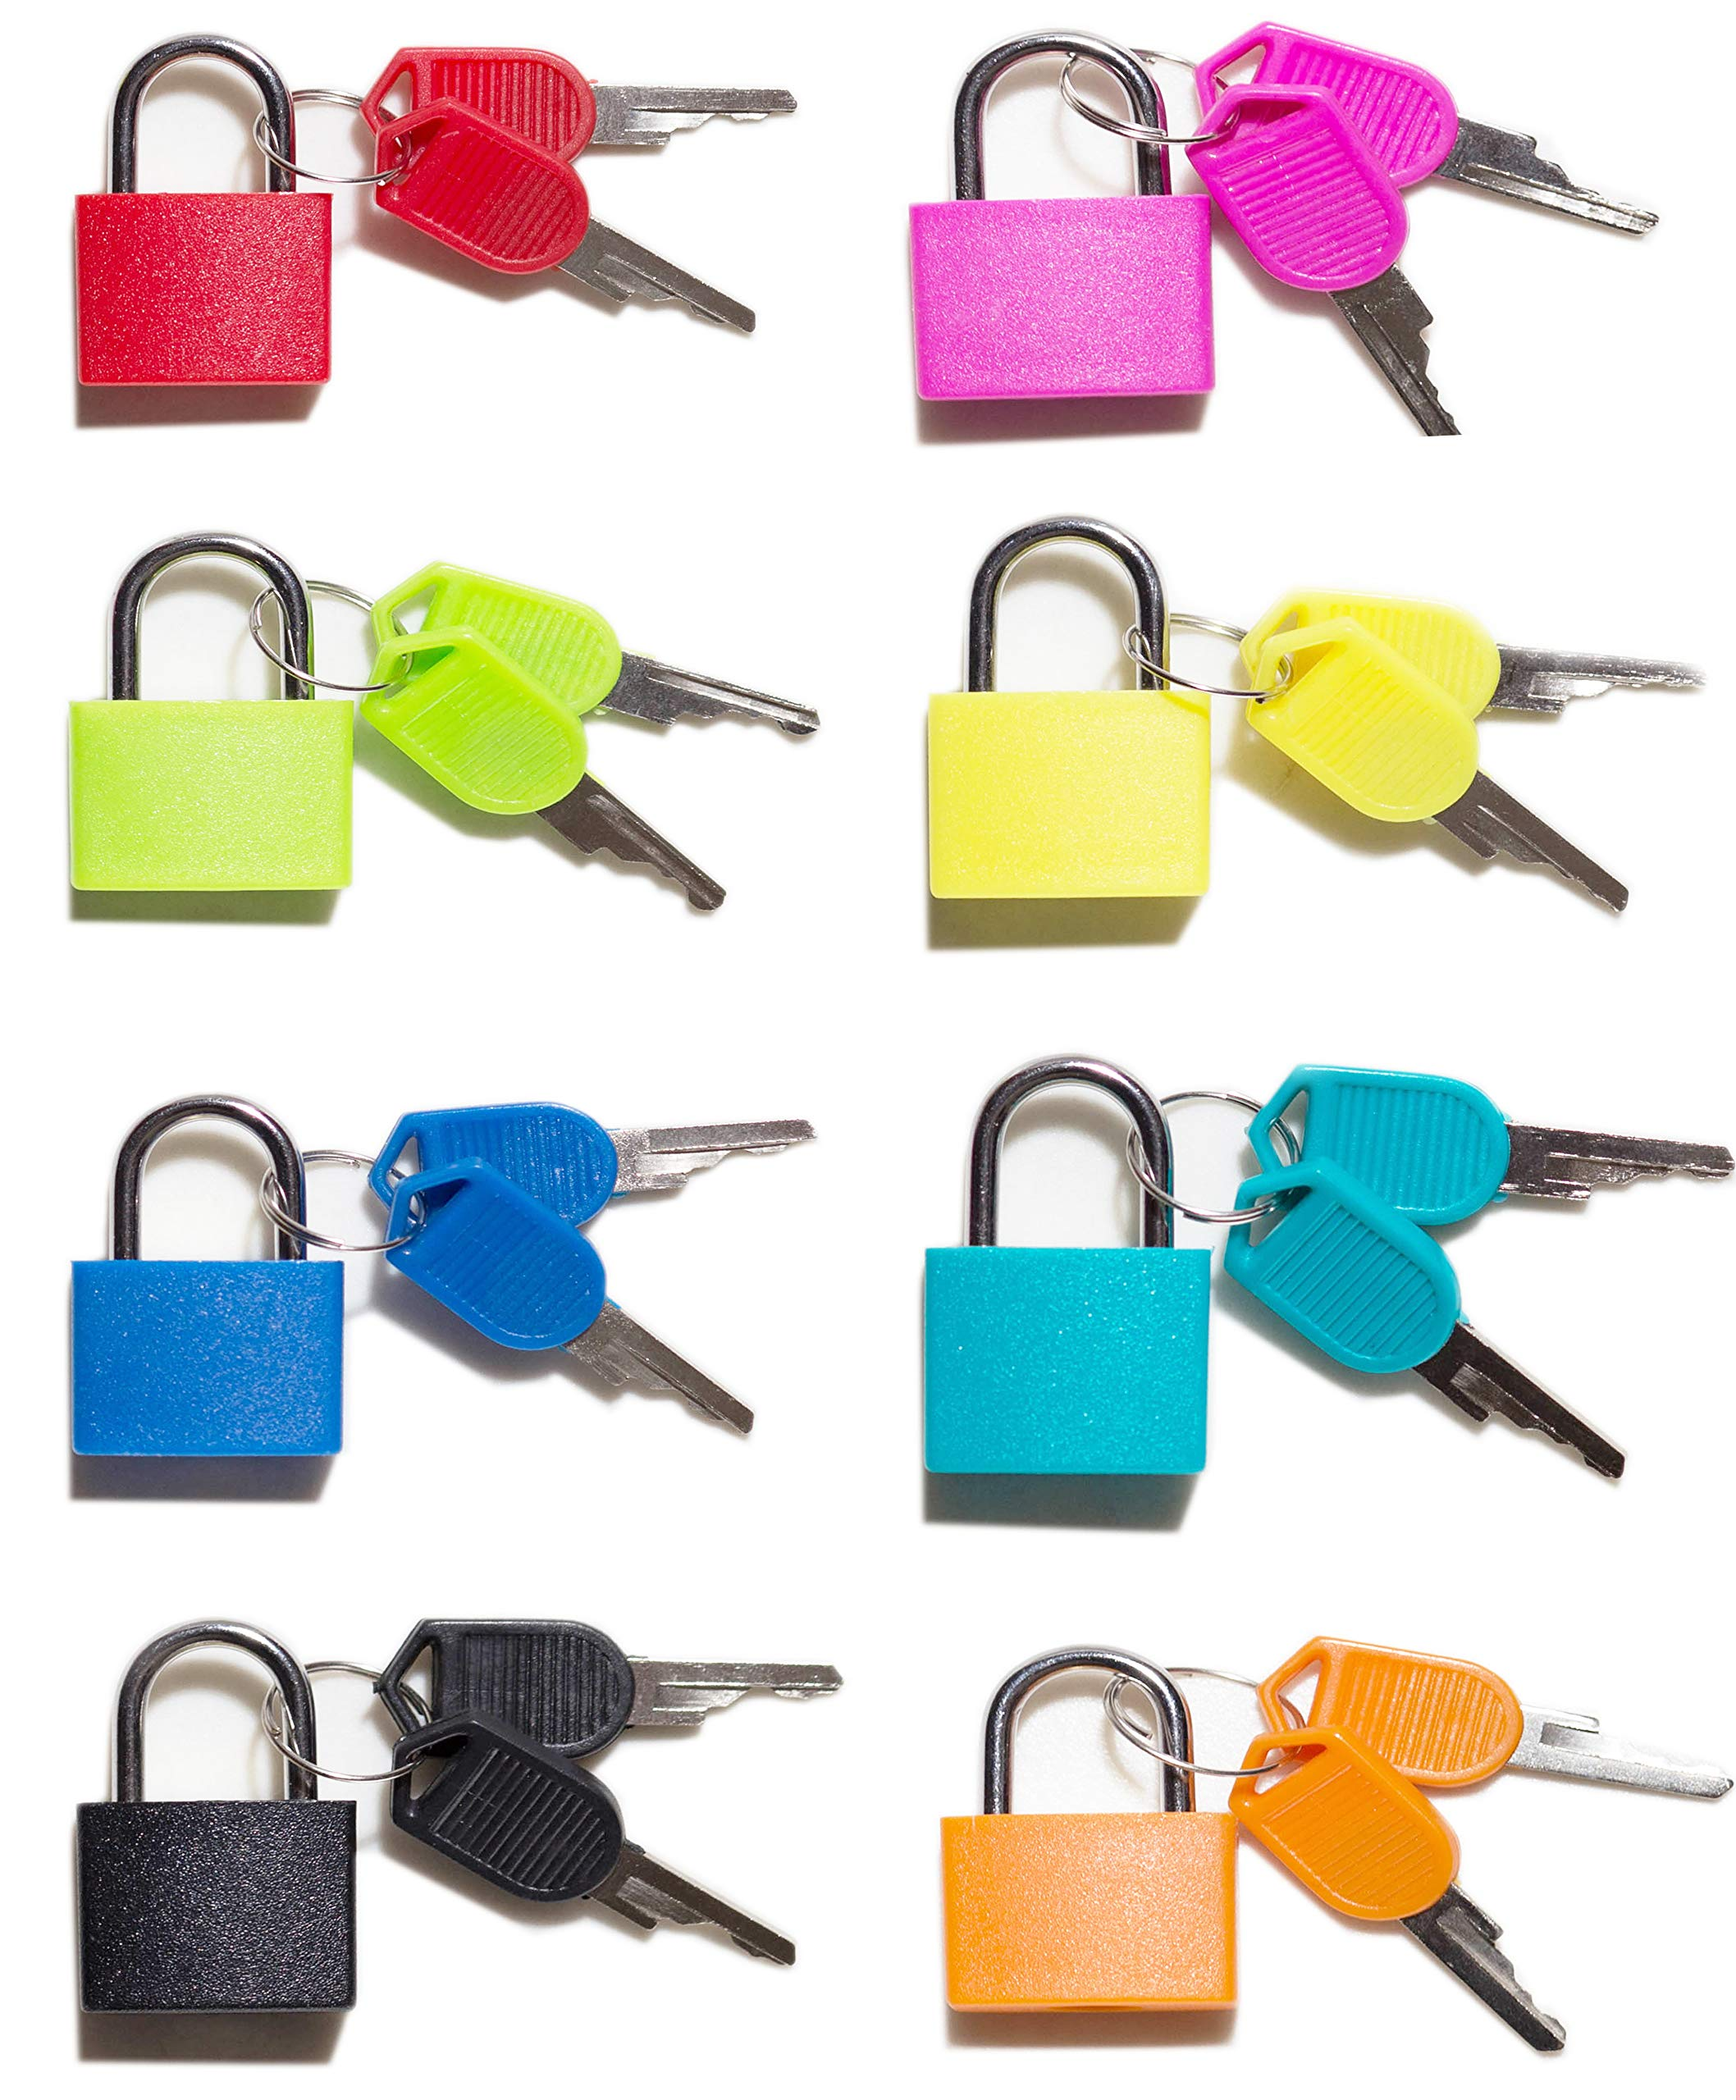 Padlock, (8 Pack) Small Padlock with Key for The Luggage Lock, Backpack,Gym Locker Lock,Suitcase Lock,Classroom Matching Game and More (Multicolor)